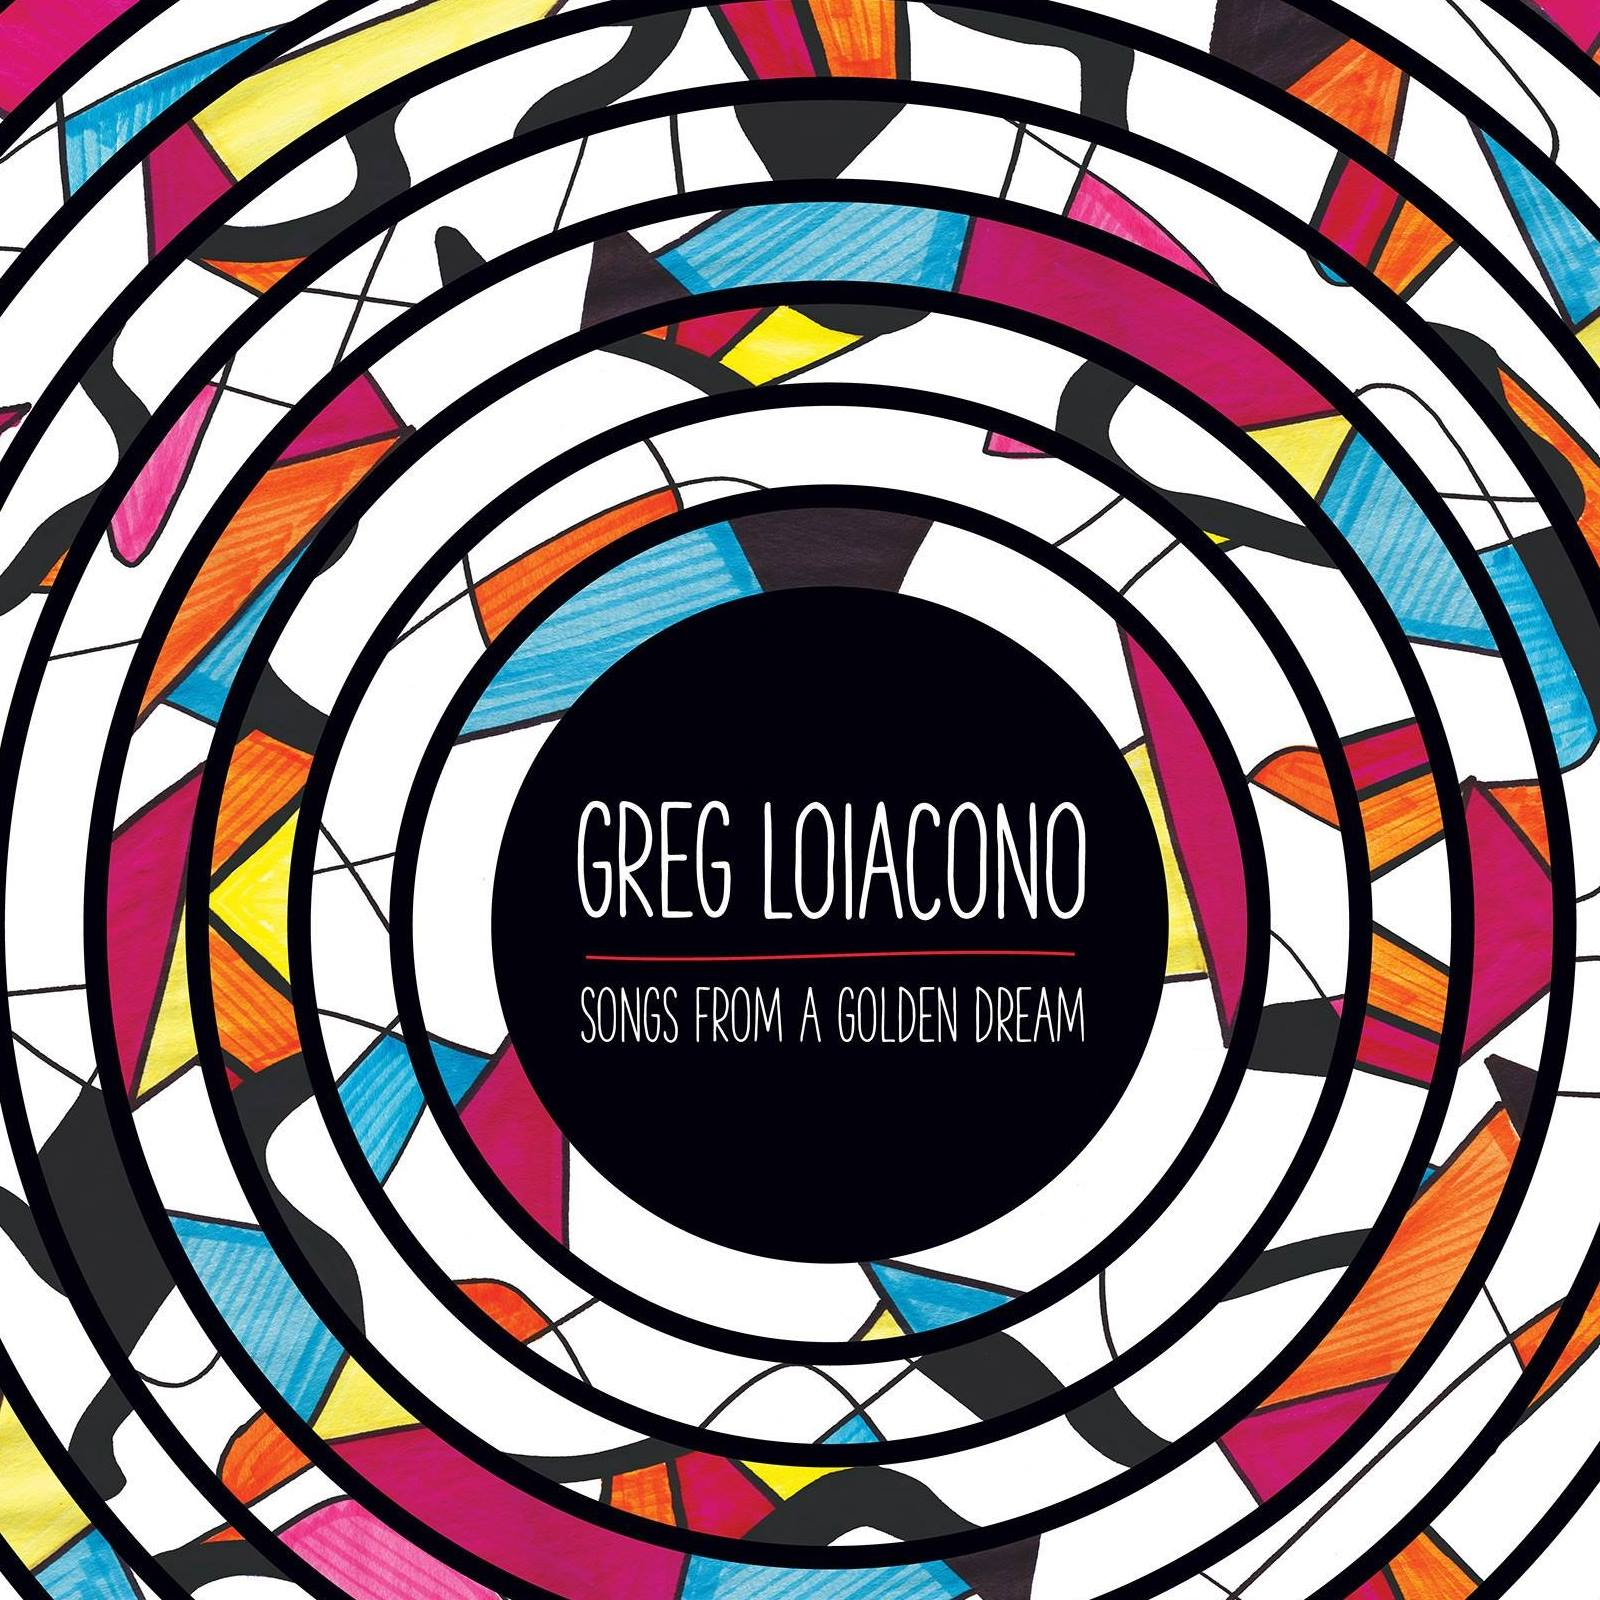 Greg Loiacono: Songs From A Golden Dream